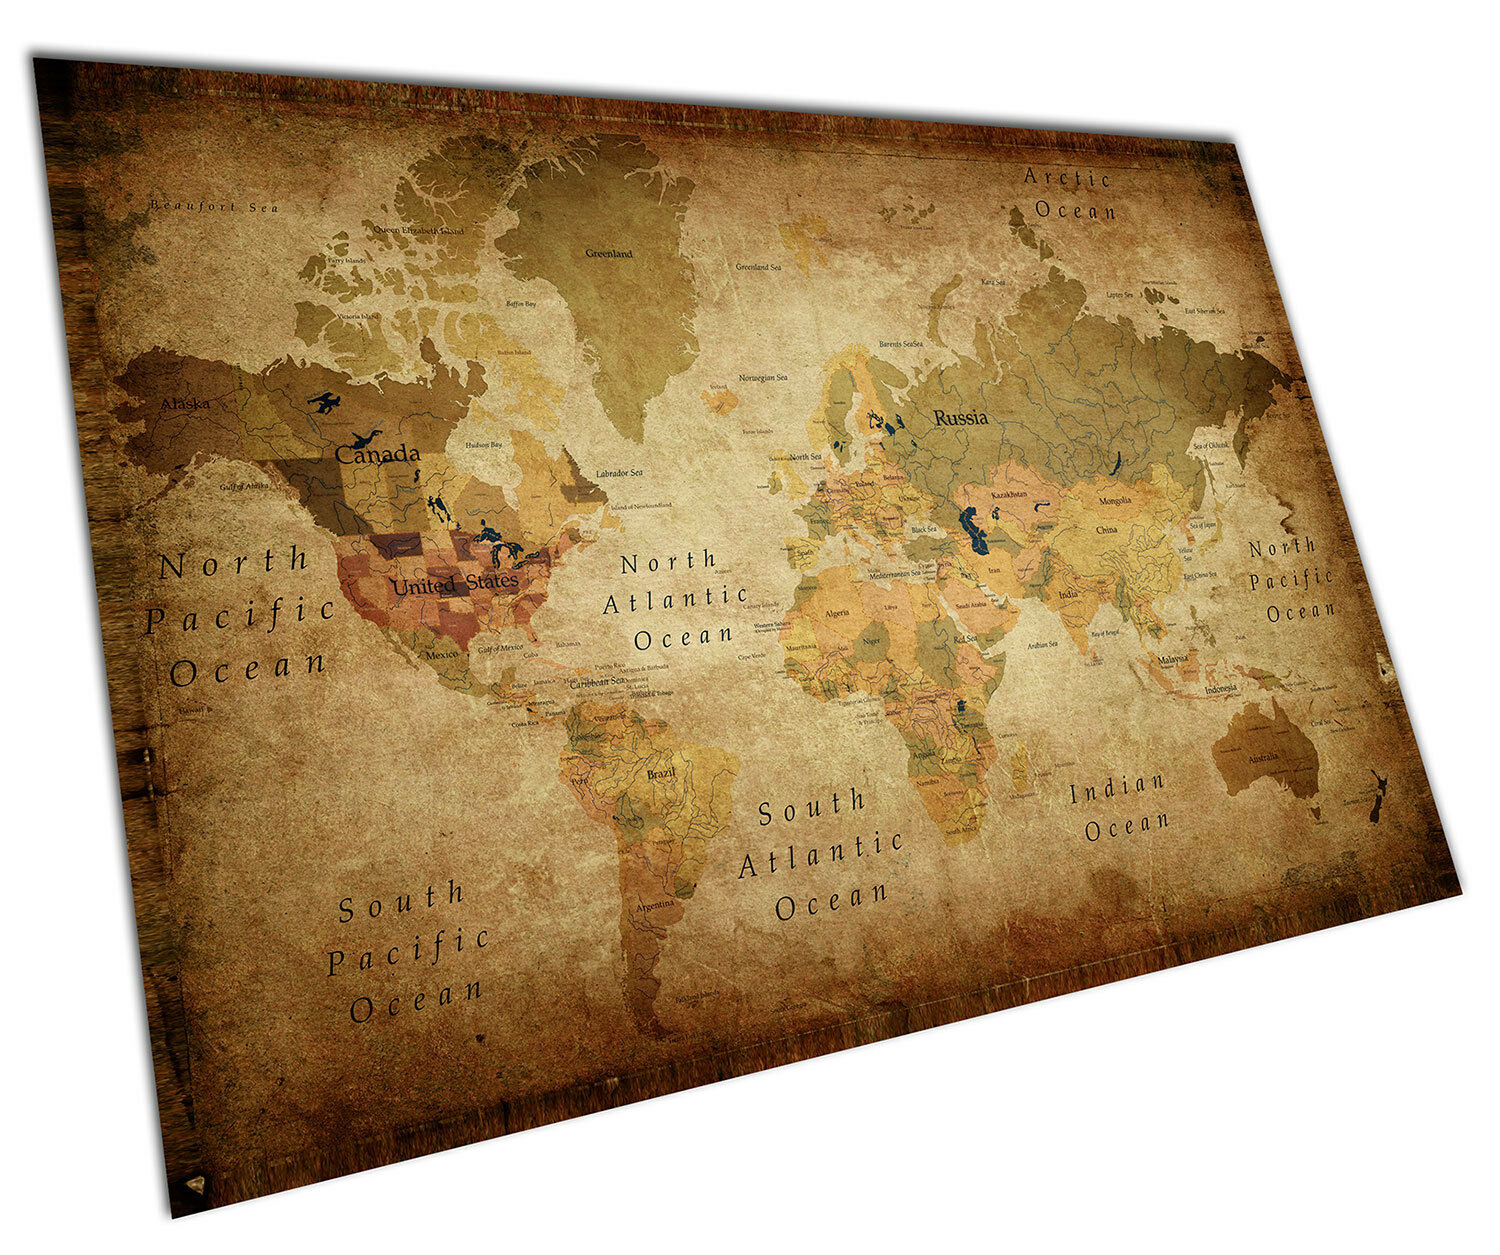 RETRO VINTAGE WORLD Map Wall Art Large A Poster X Inch - A1 world map poster